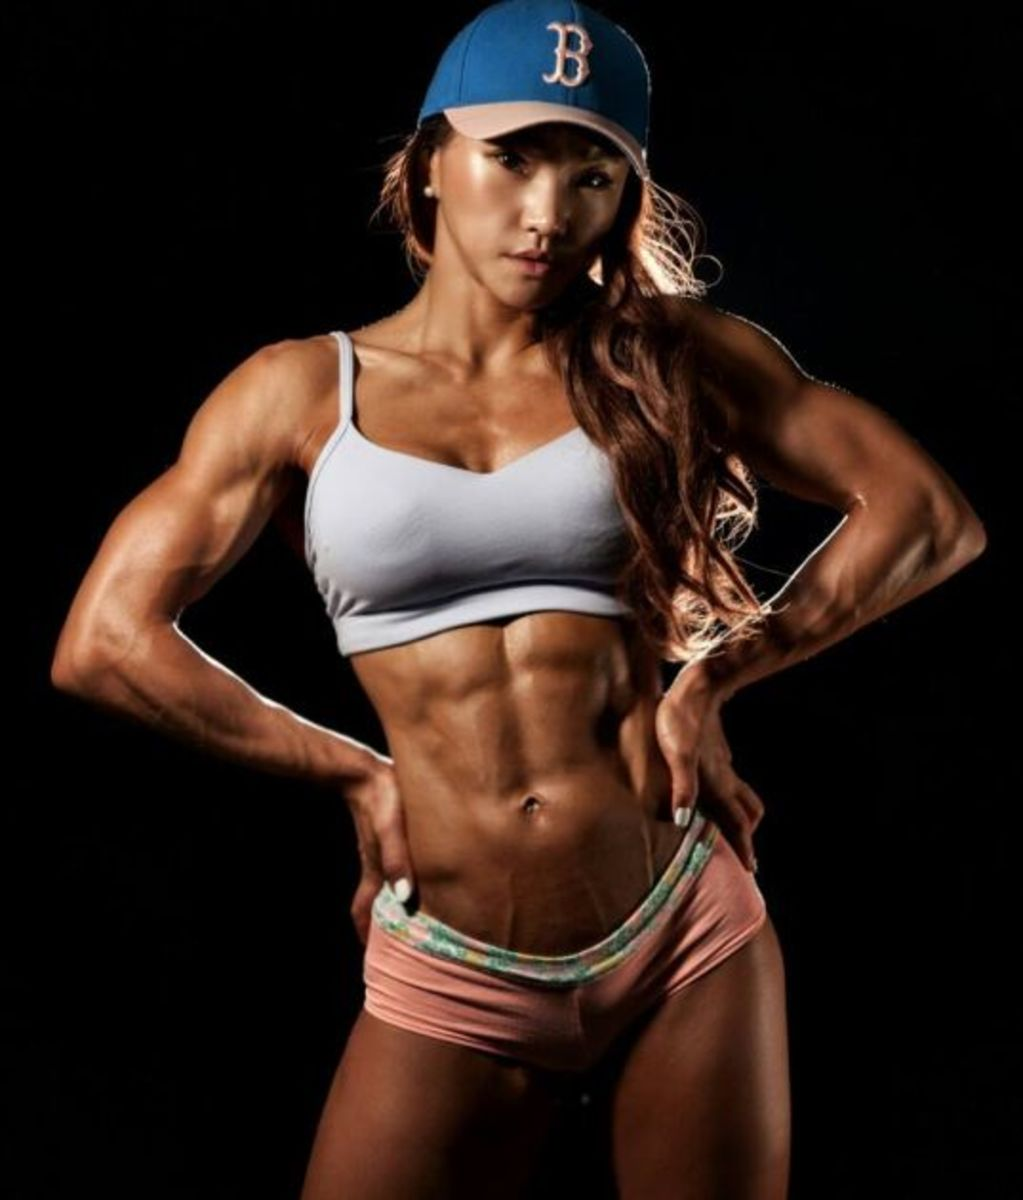 Chu-mi Kim - Female Fitness